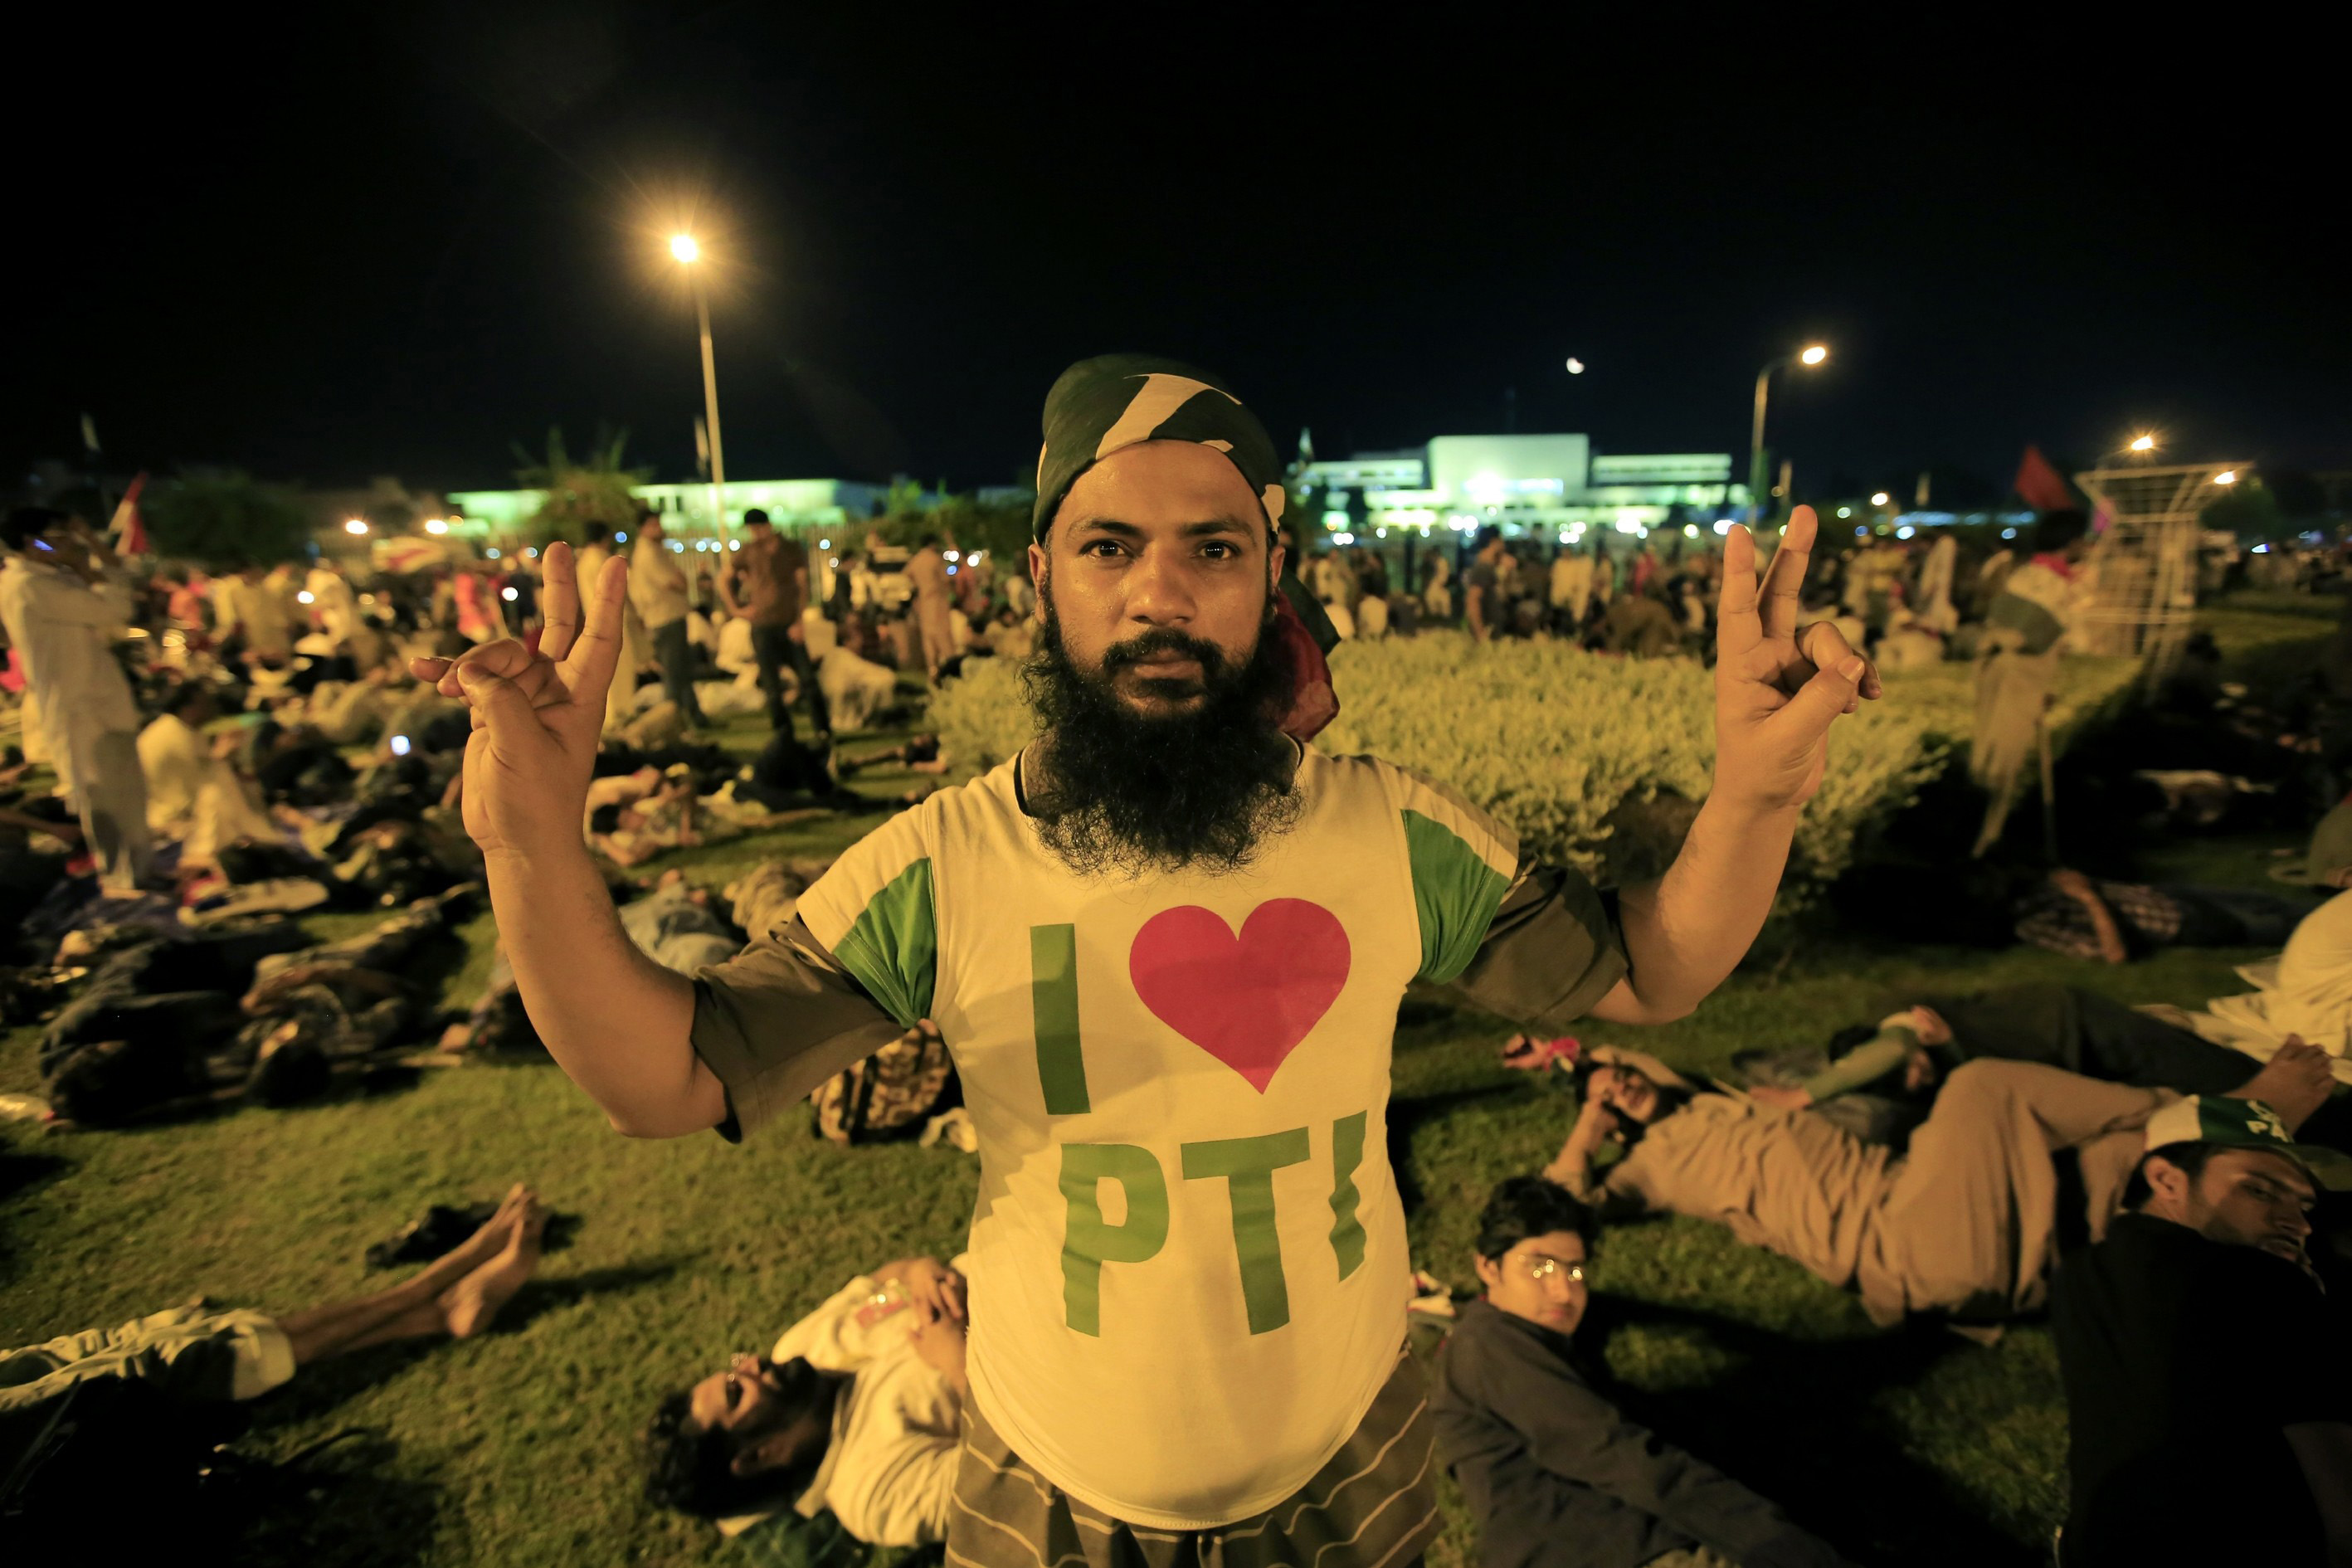 Pakistani political party Pakistan Awami Tehreek (PAT) members celebrate  entering the Red Zone in Islamabad, Pakistan, on August 20, 2014. Thousands of protesters ran over the barricades and entered Pakistani capital Islamabad's sensitive Red Zone area, which houses state buildings, on Tuesday night as the heavy force deployed there offered no resistance. Chanting anti-government slogans, protesters wanted to topple the government.